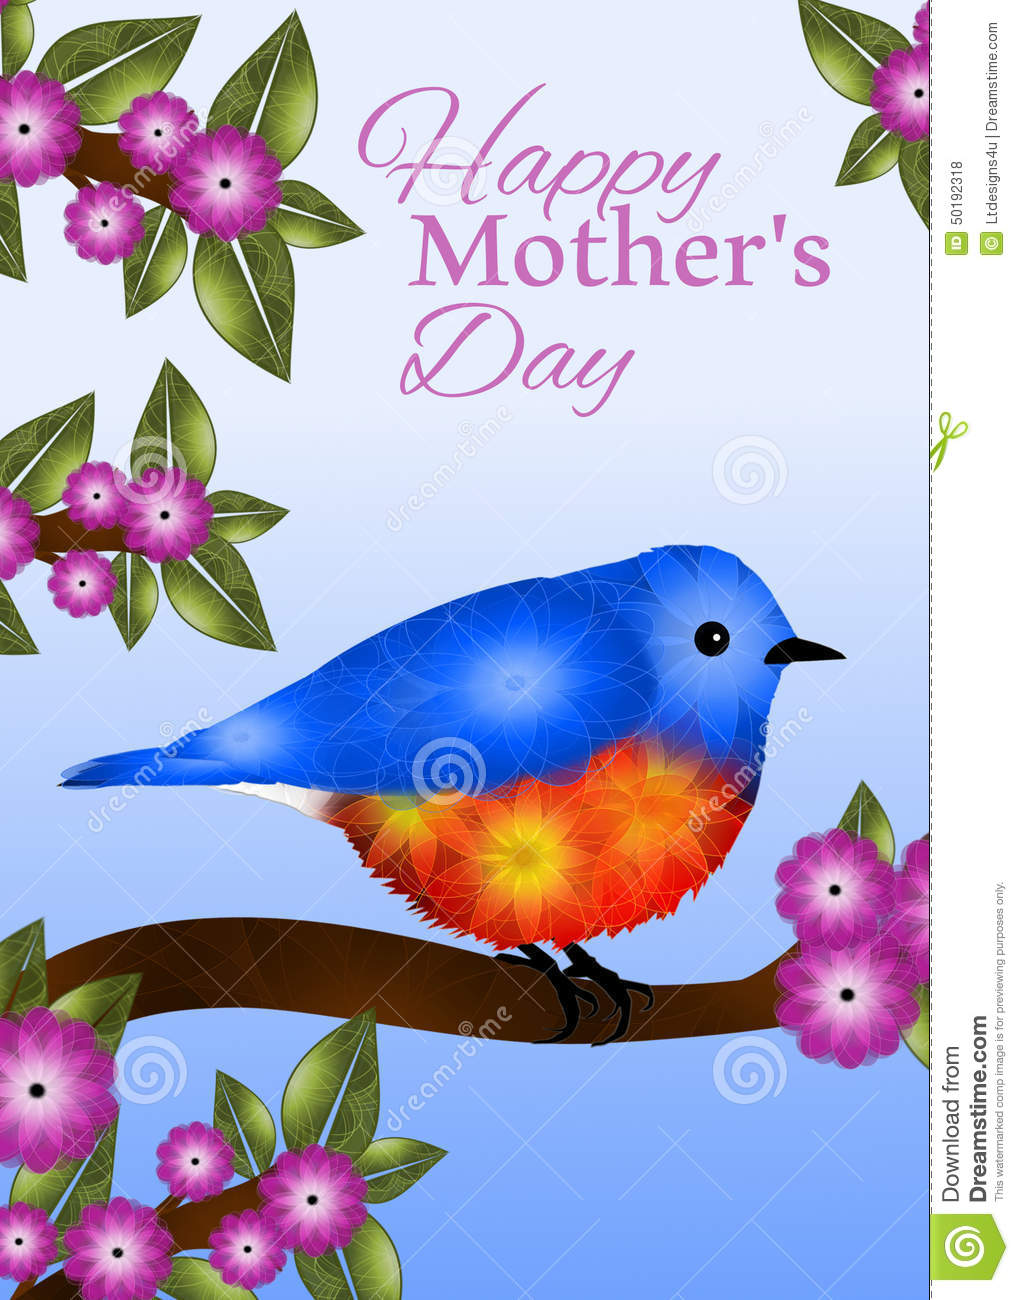 Bluebird Mothers Day Greeting Card Design Stock Illustration